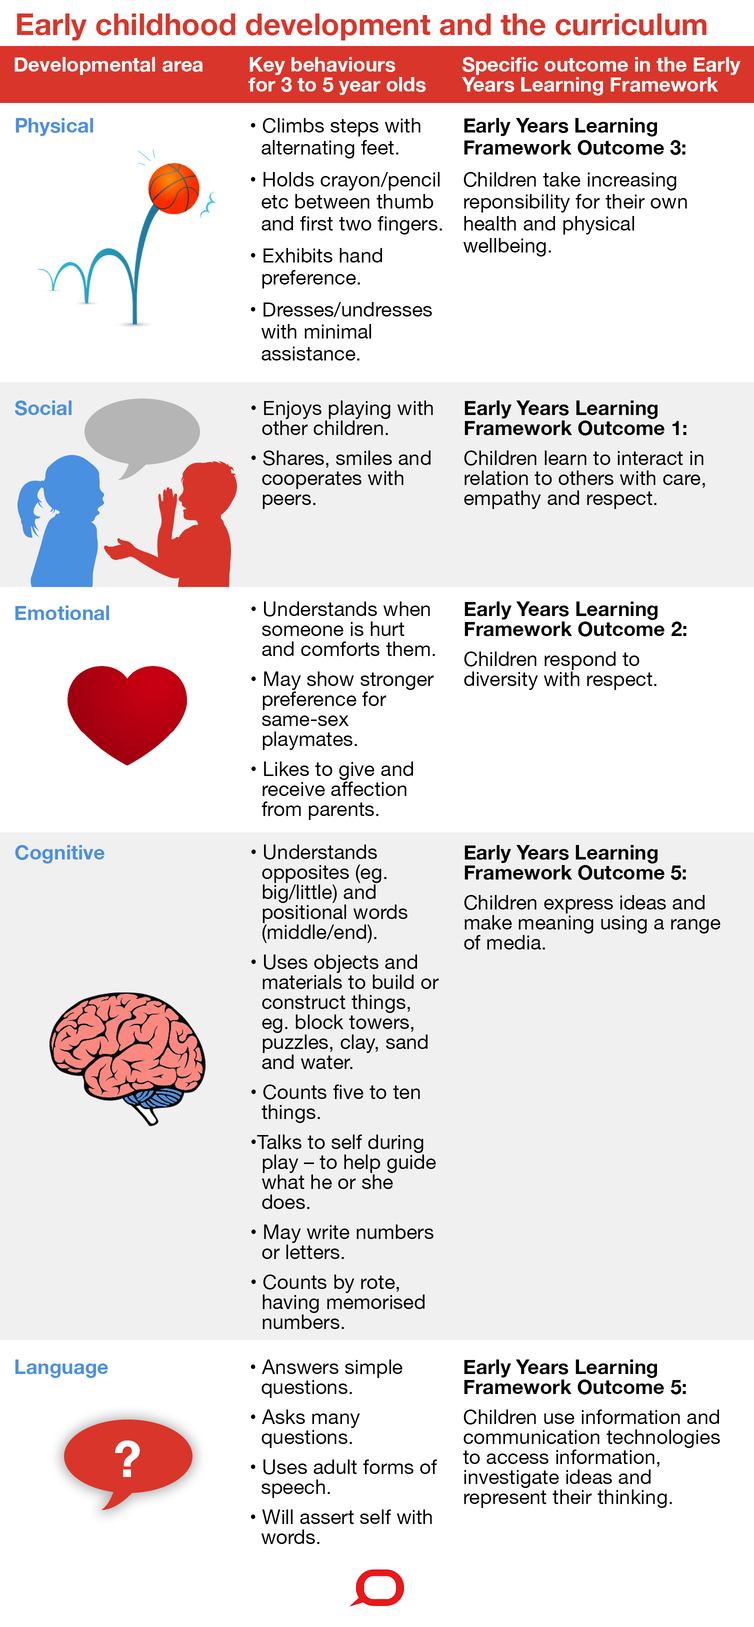 Developmental Milestones And The Early Years Learning Framework National Quality Standards Cc By Nd